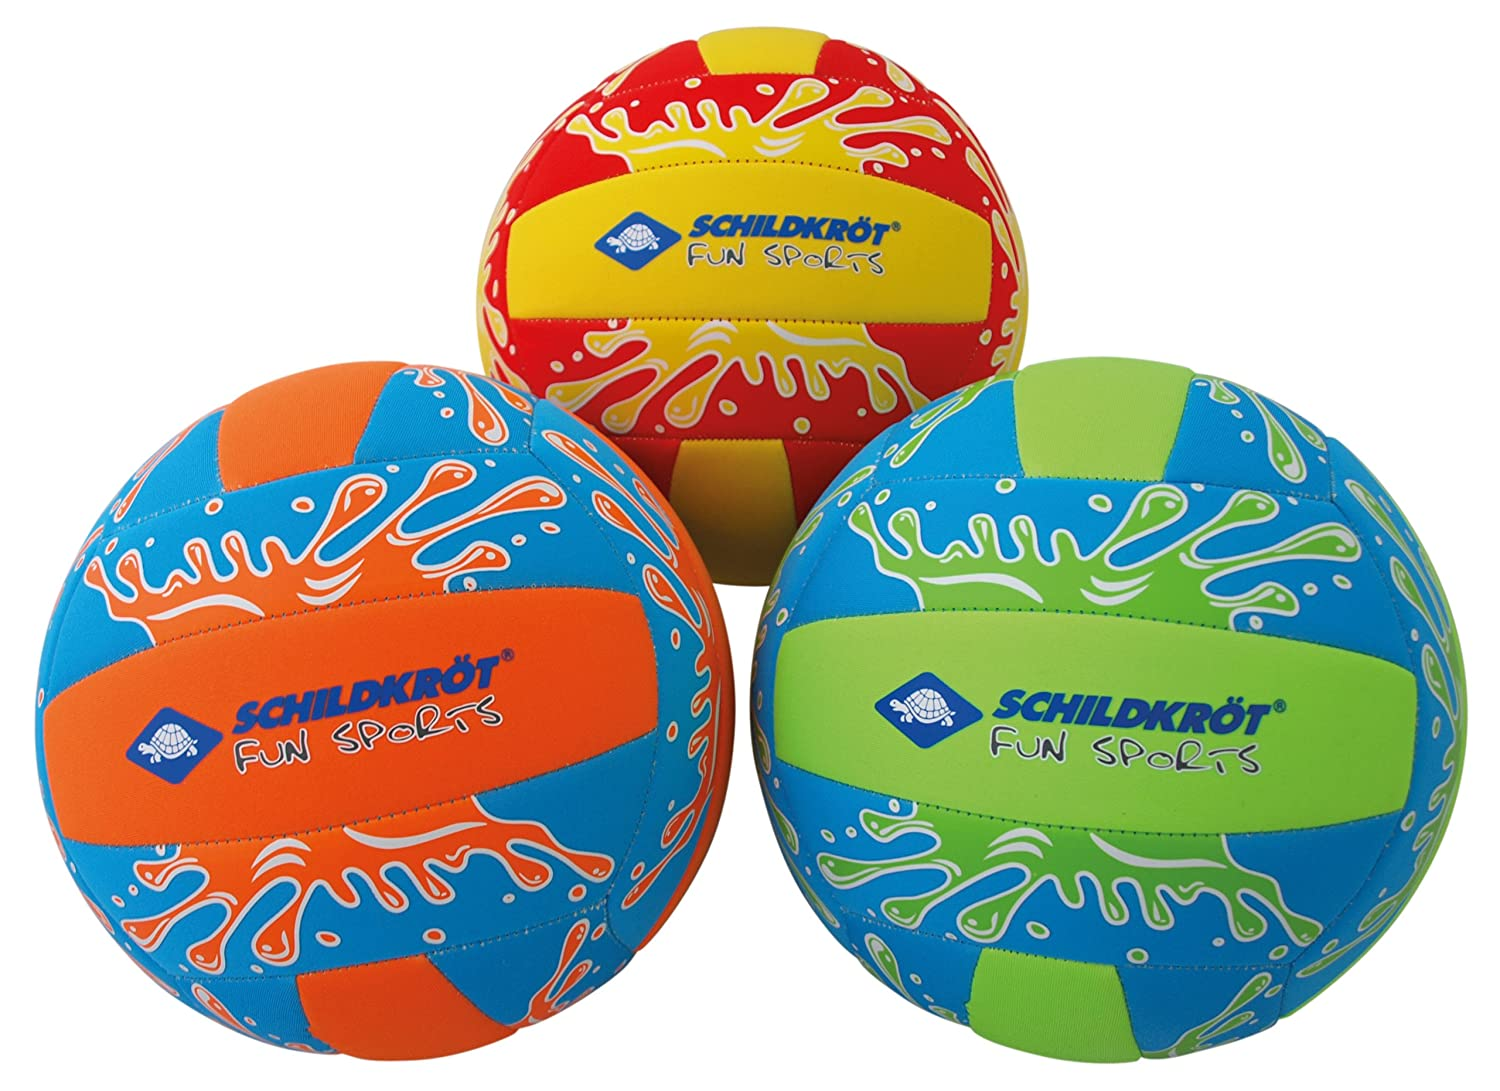 Schildkröt Fun Sports Néoprène Beachvolley, Taille 5 Mixte Adulte, Multicolore